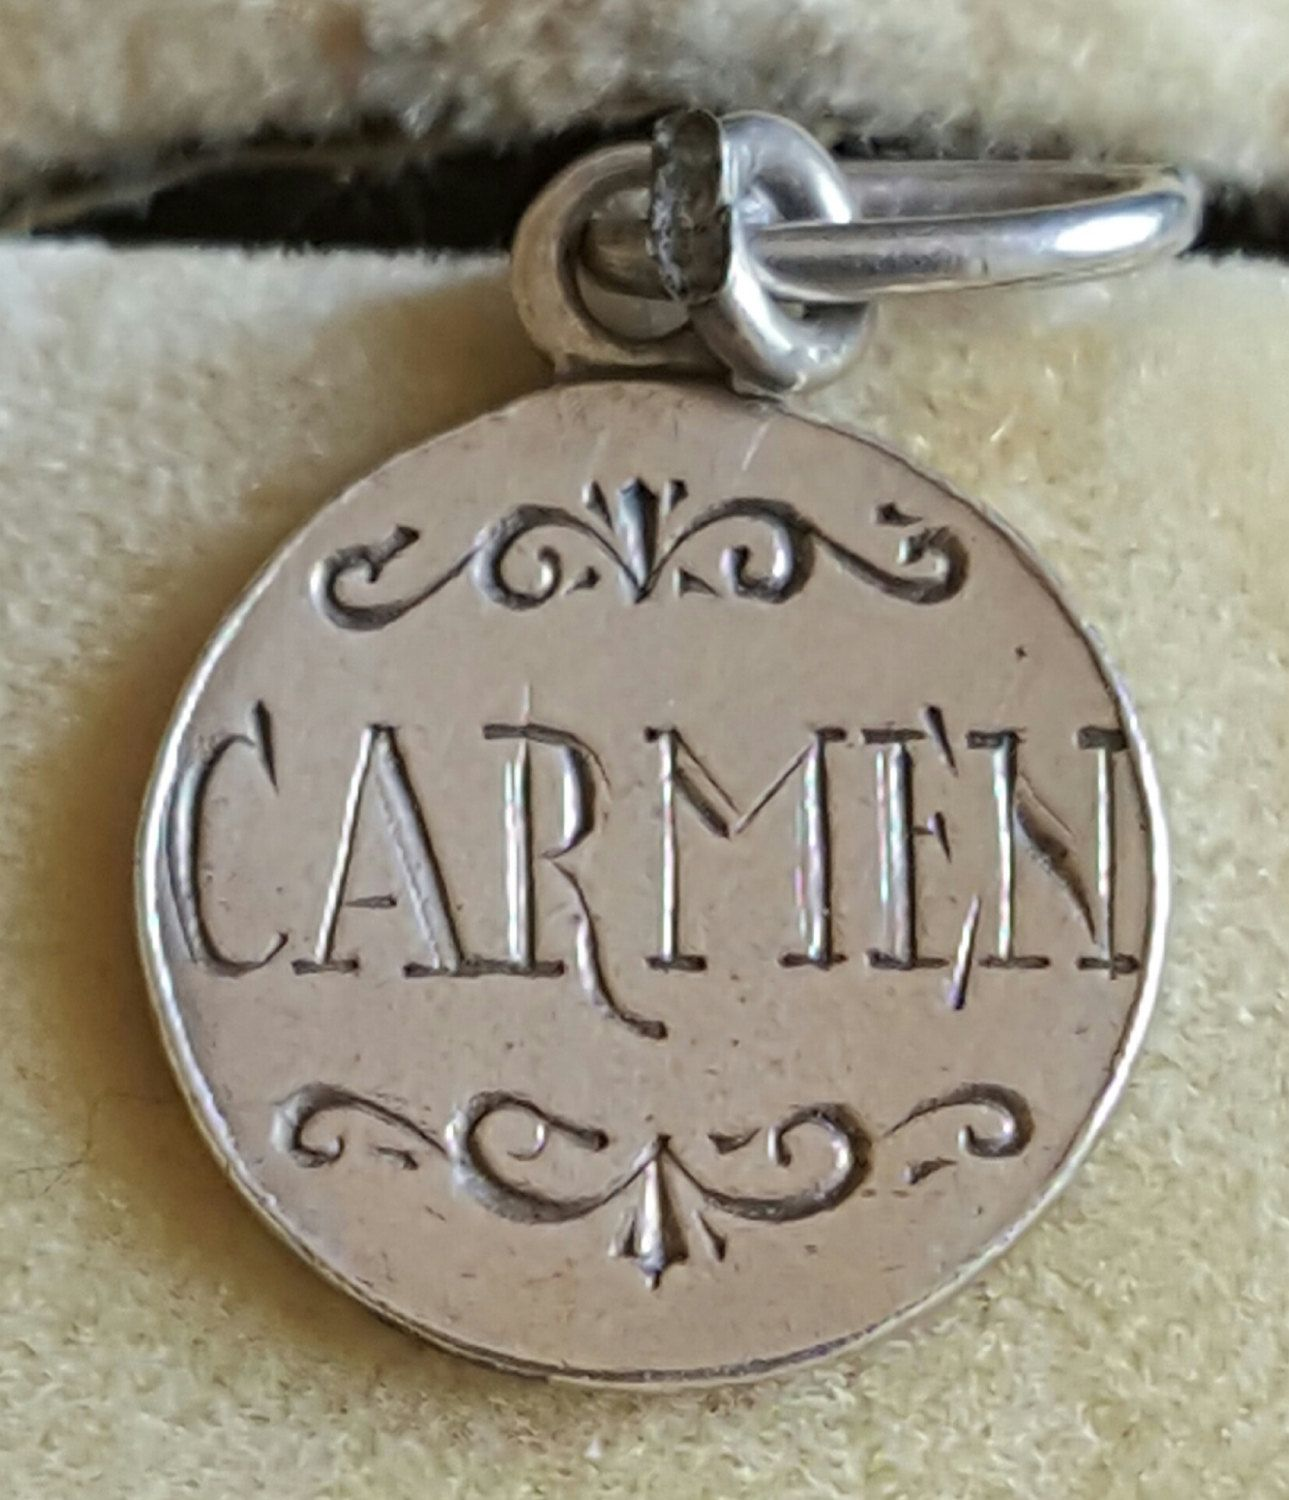 Tiny vintage spanish silver engraved pendant engraved carmen spain tiny vintage spanish silver engraved pendant engraved carmen spain 1950s engraved spanish i love you engraved medal mozeypictures Choice Image